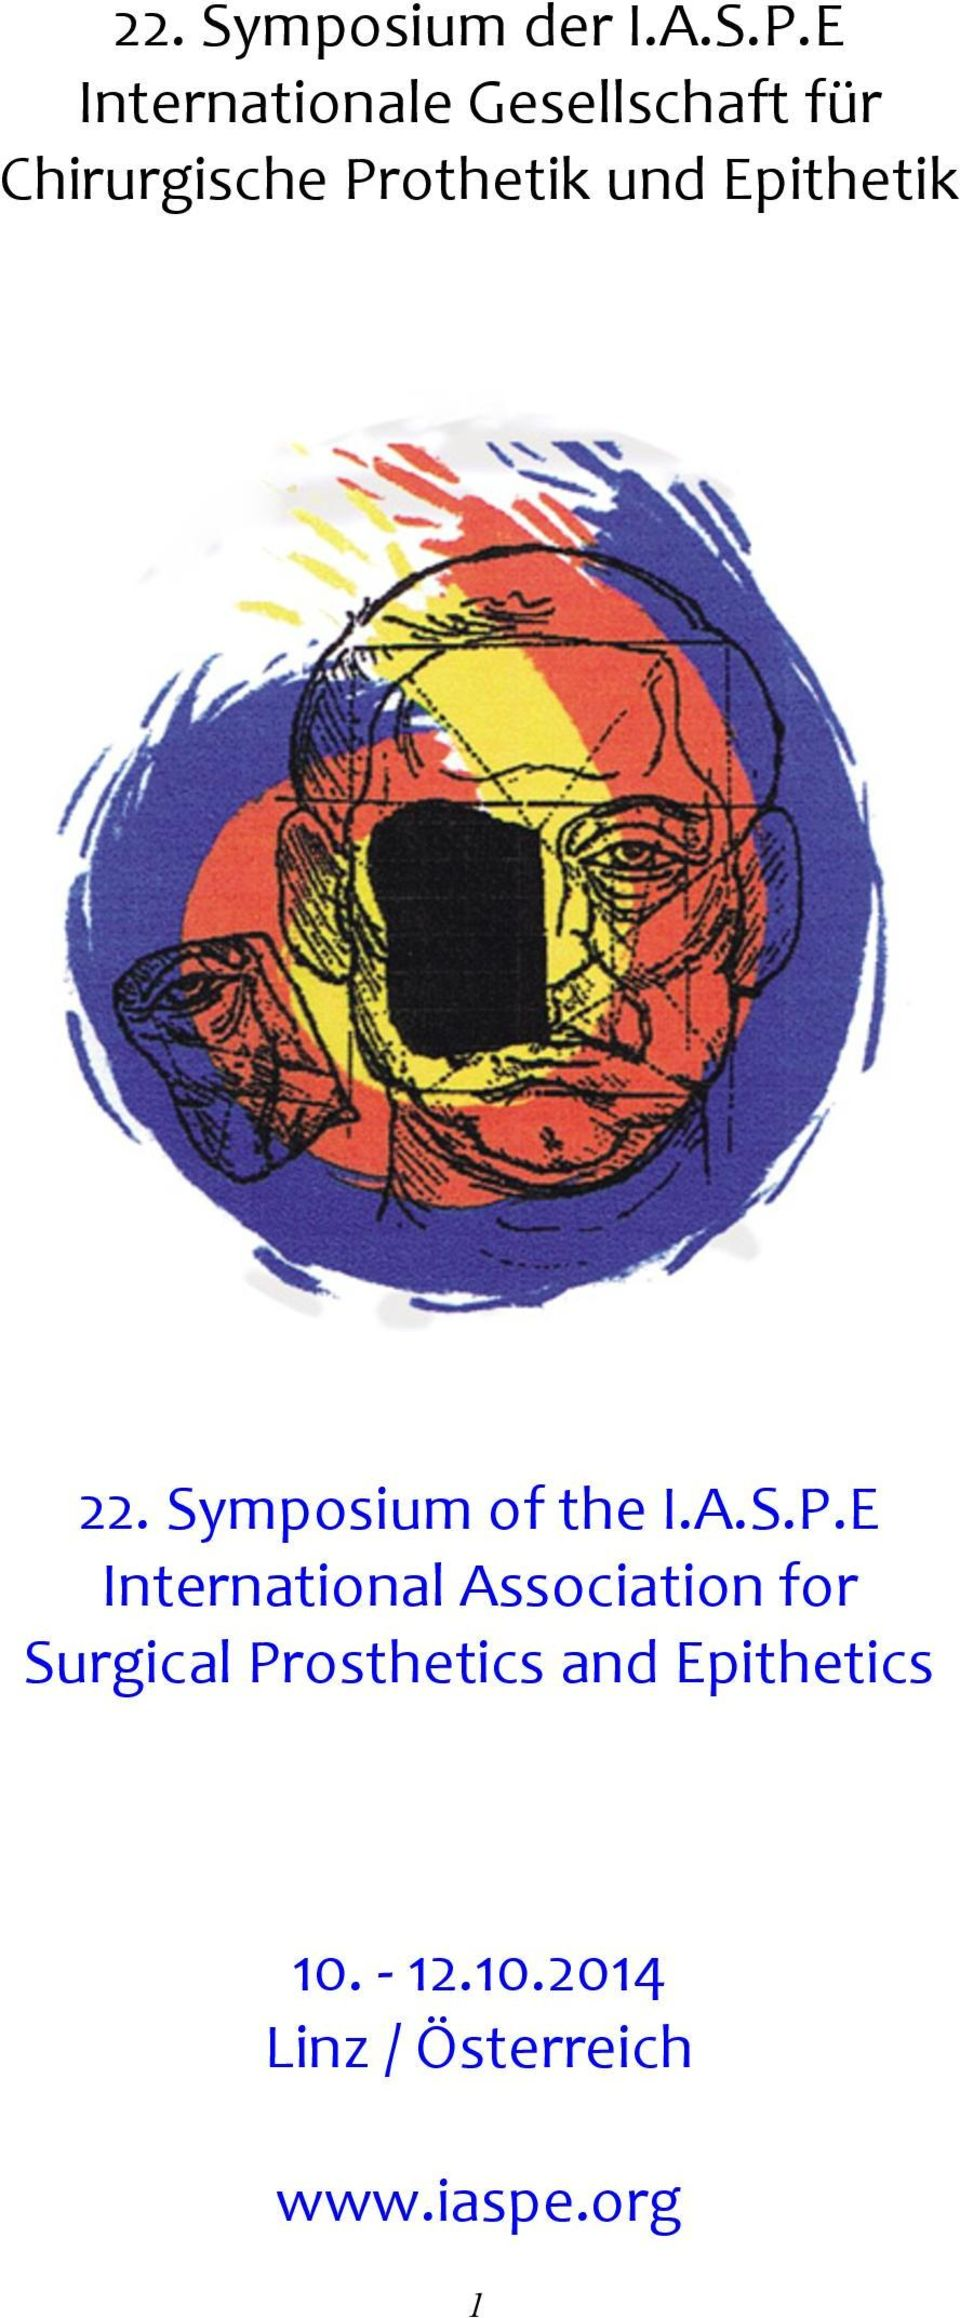 Epithetik 22. Symposium of the I.A.S.P.